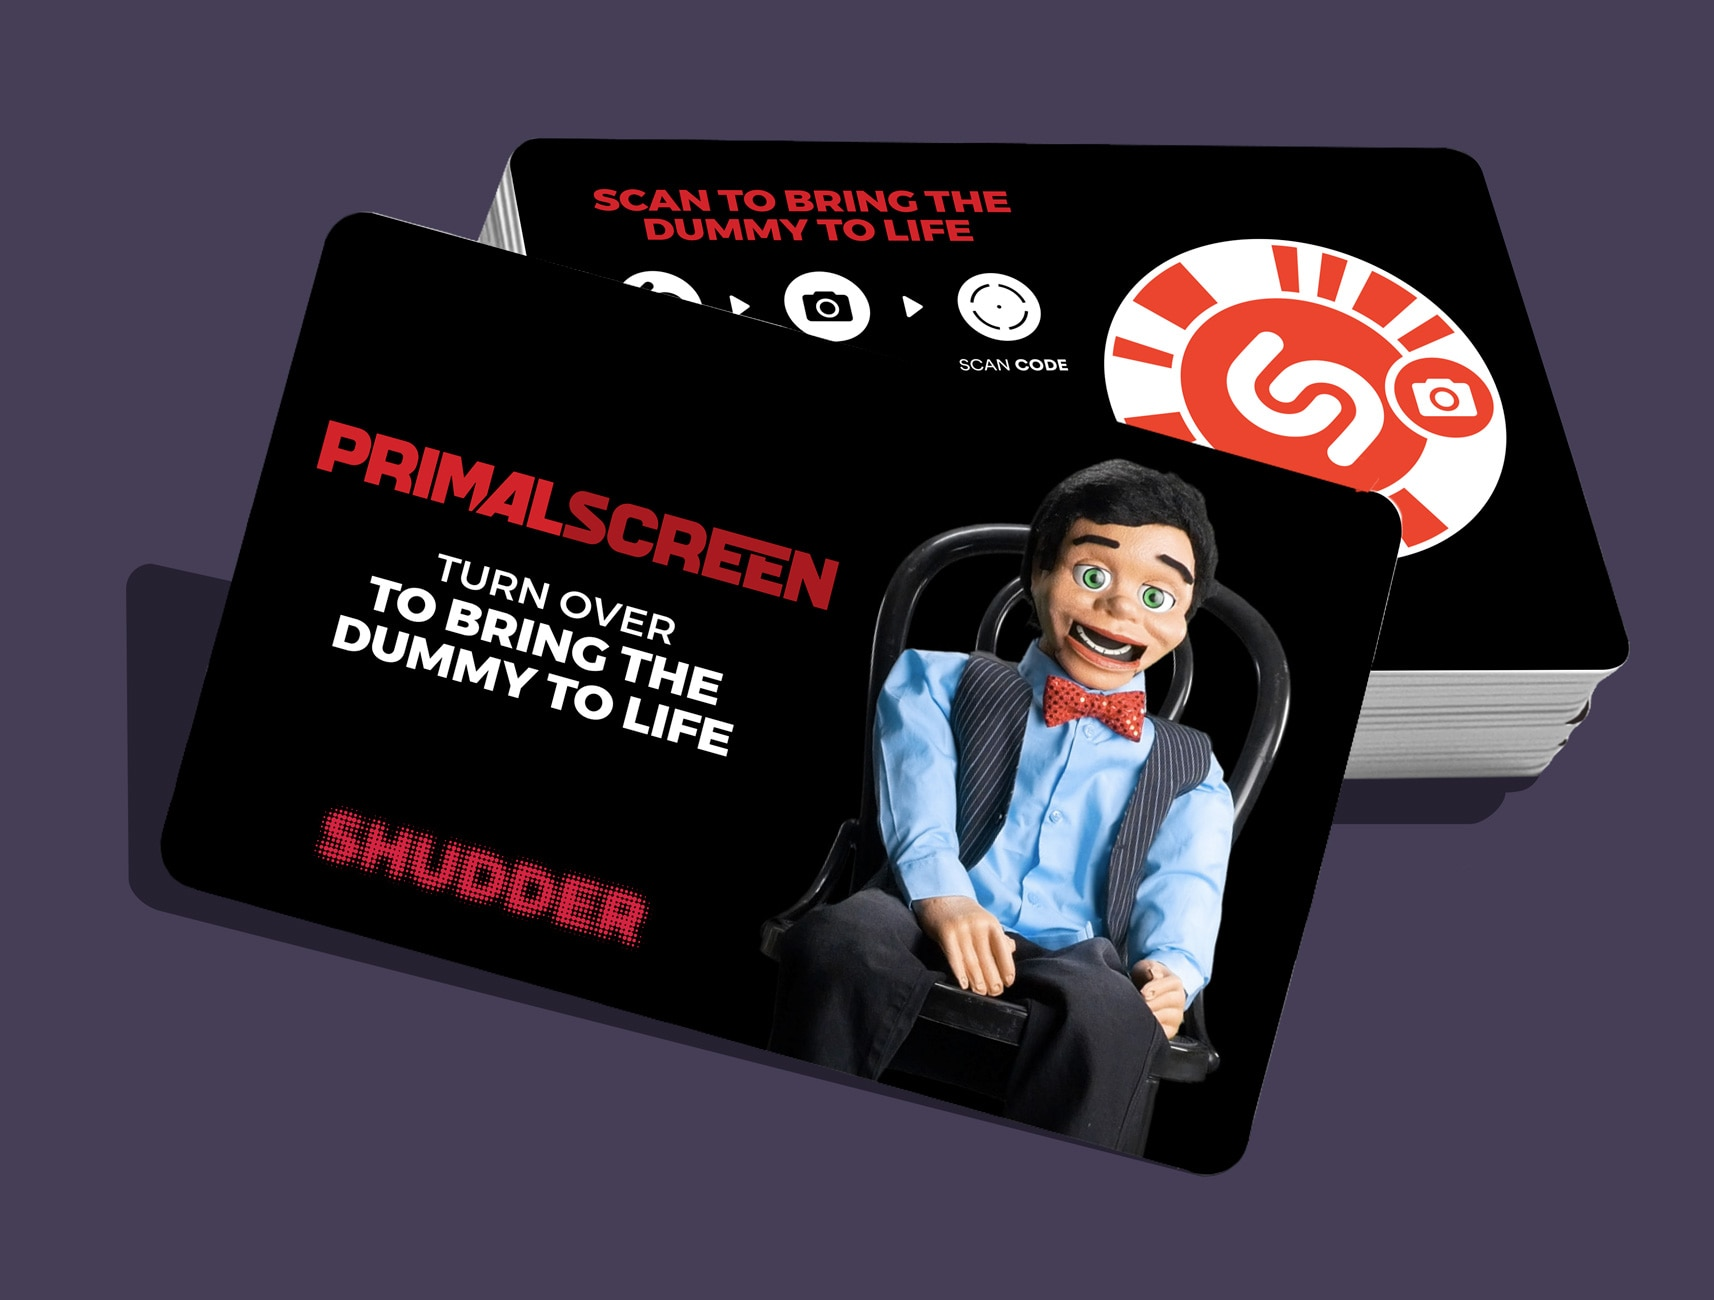 Shudder Sharetape AR 2 - Contest: Win a Creepy Virtual Ventriloquist Dummy Card With One Free Month of Shudder!